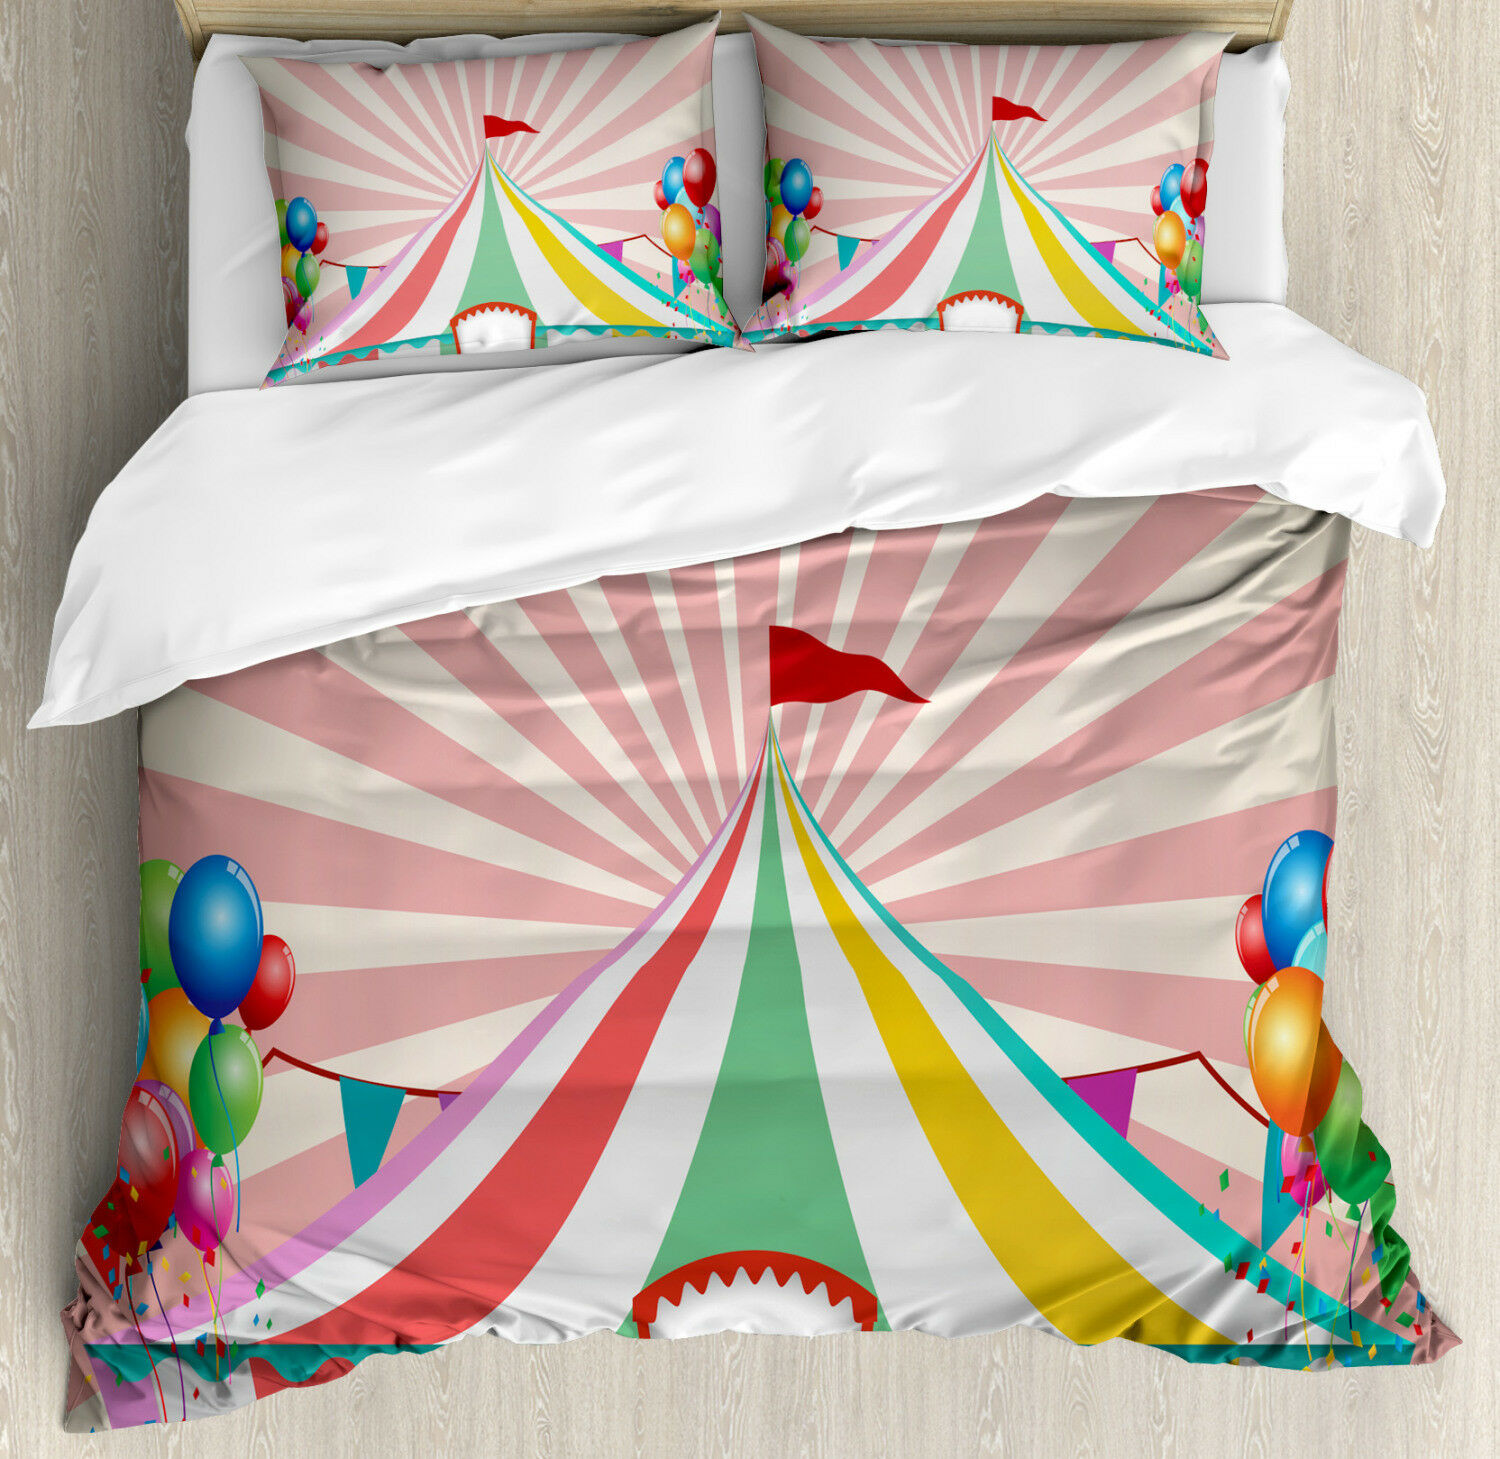 colorful Duvet Cover Set with Pillow Shams Vintage Circus Balloons Print